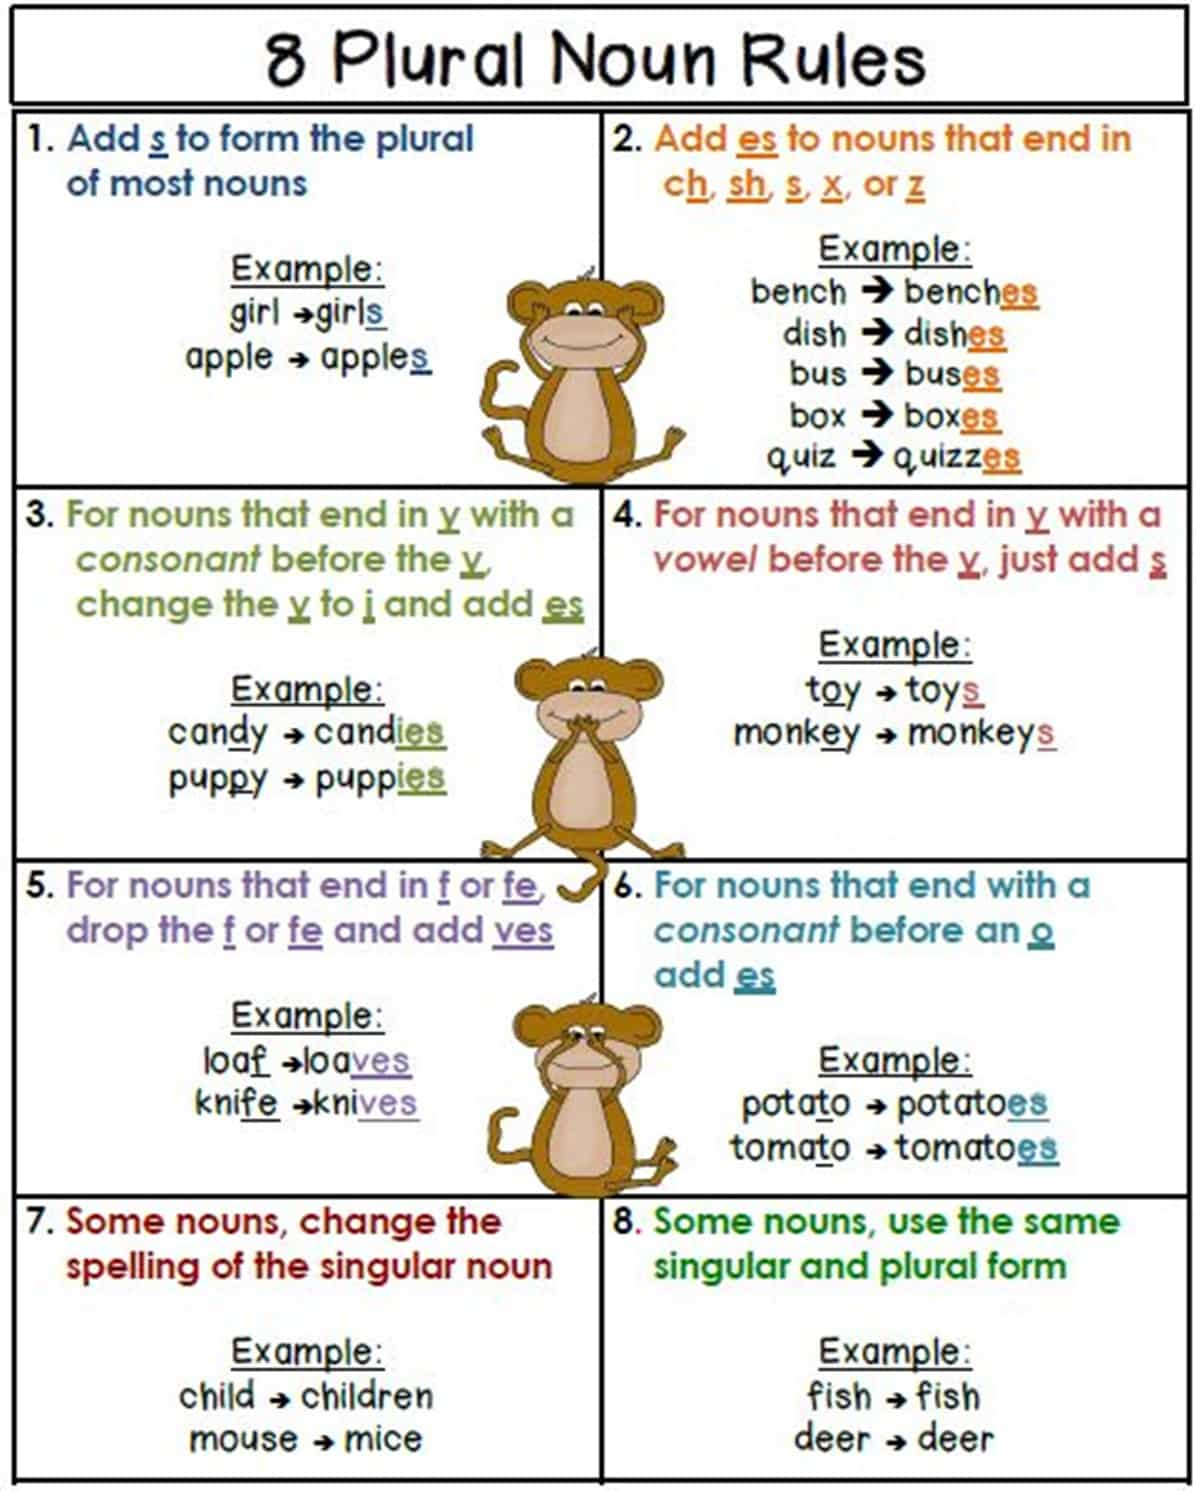 Singular and Plural Nouns: Definitions, Rules & Examples 14